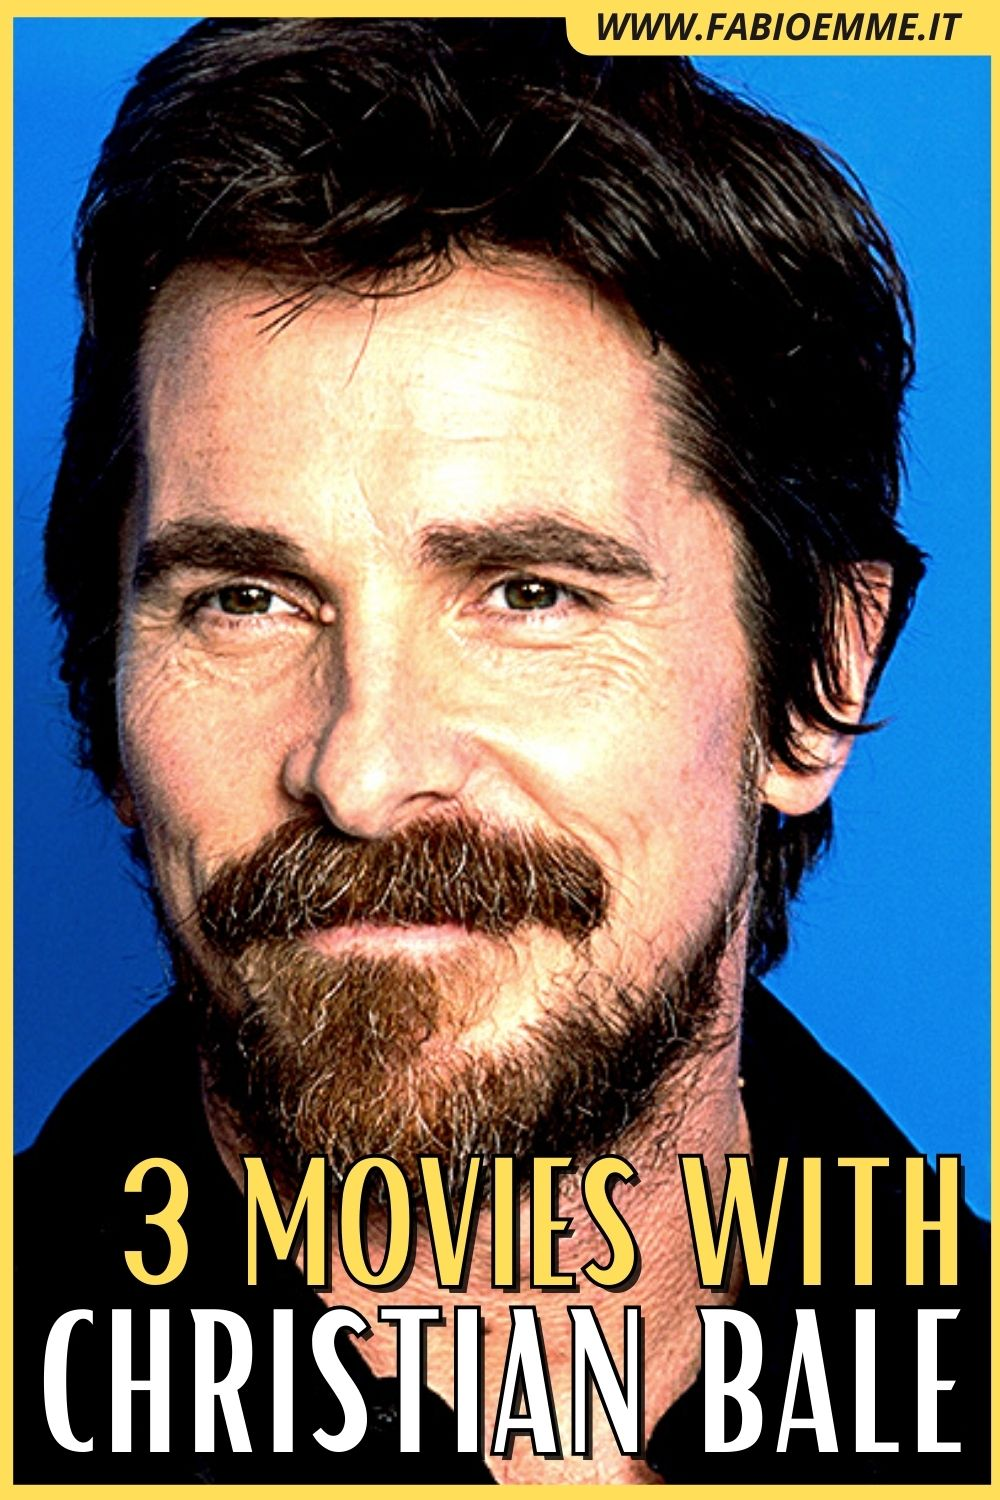 3 Movies with Christian Bale